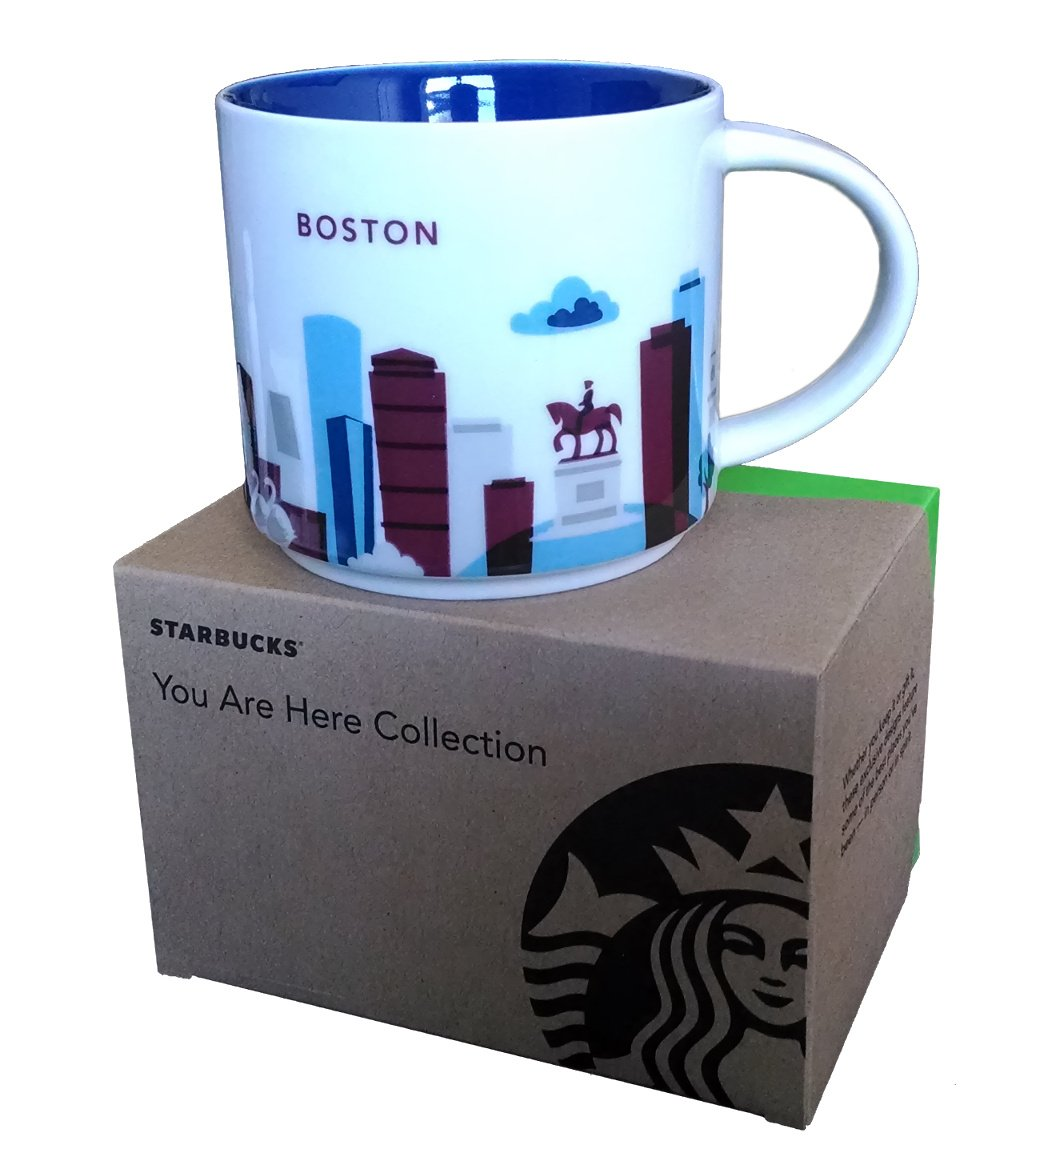 Amazon Starbucks Coffee Mug You Are Here Collection Boston 14 Oz Kitchen Dining